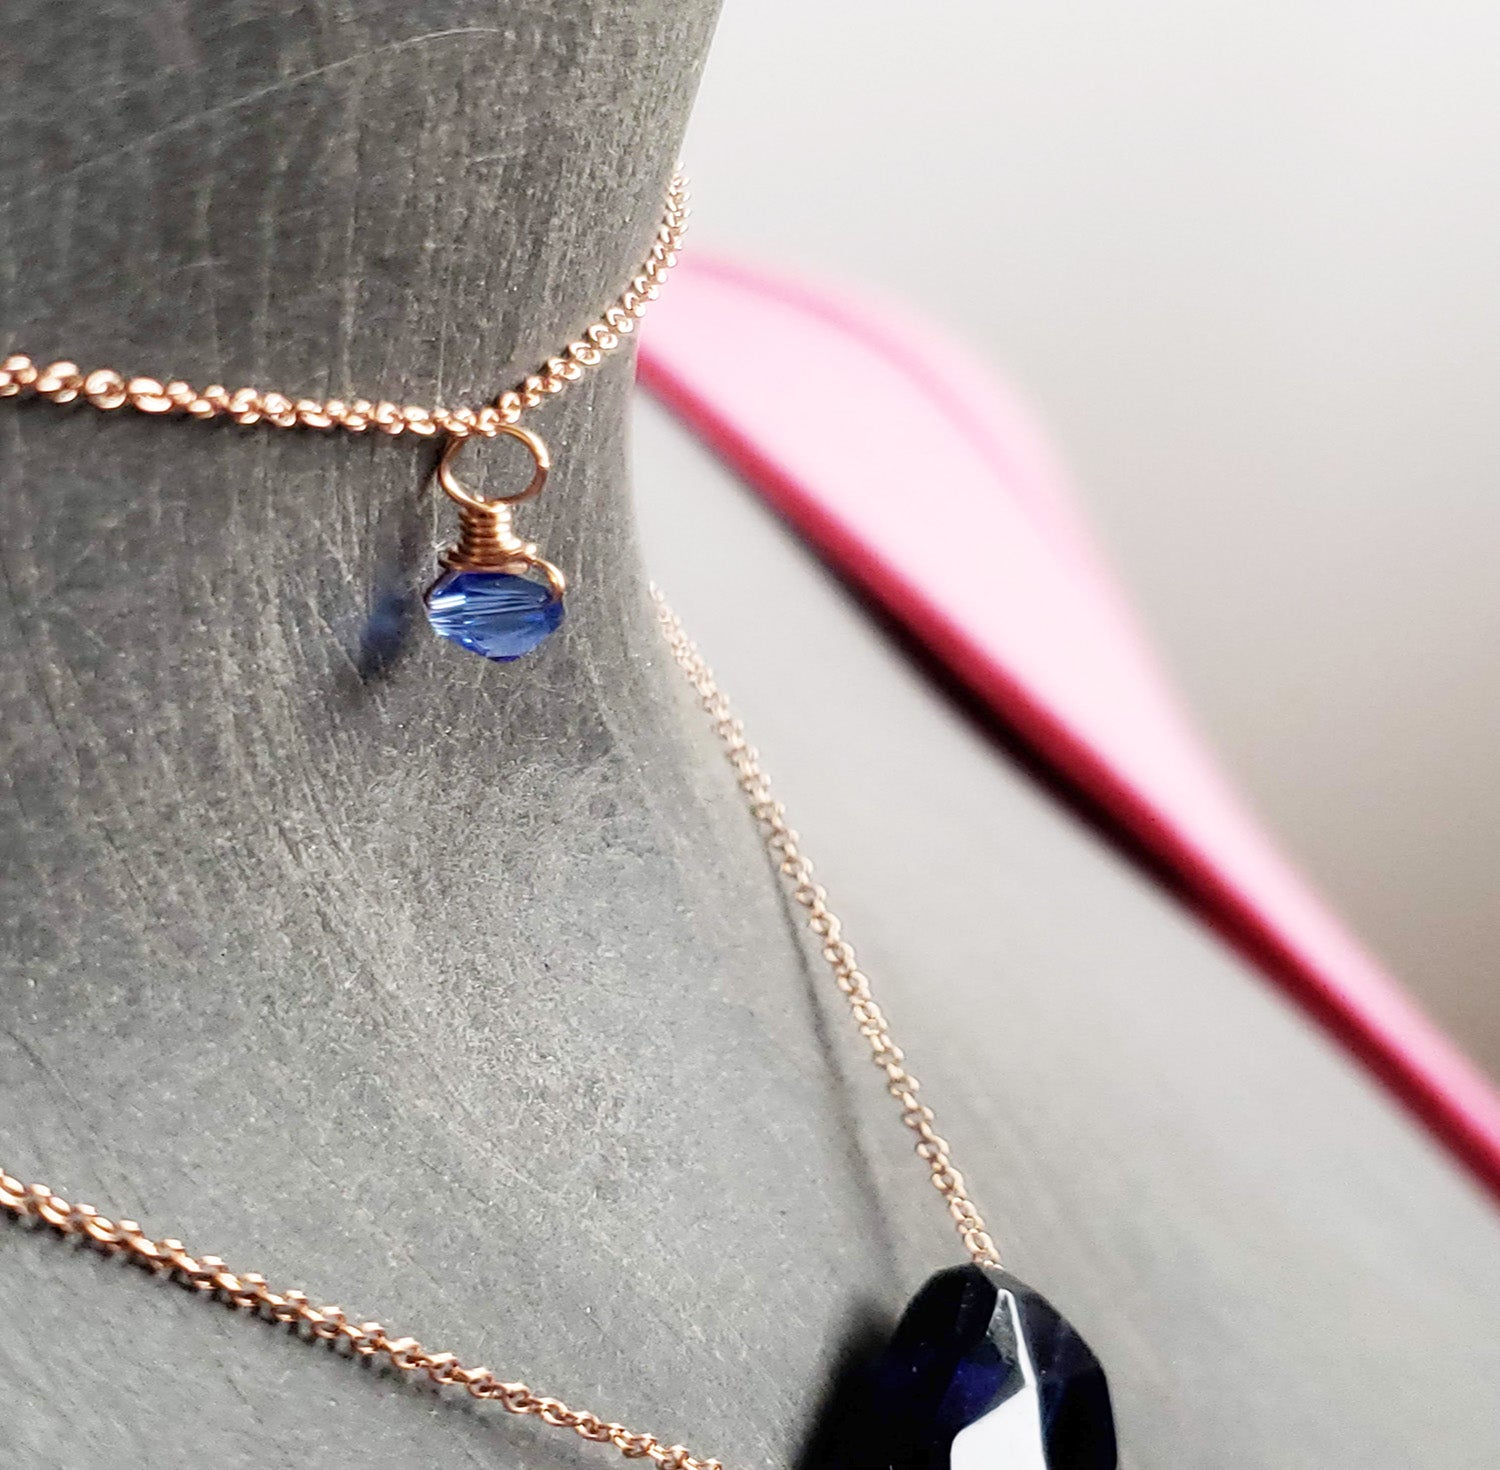 Minimalist Handmade Swarovski  Sapphire Crystal September Birthstone Necklace Personalized minimalist chains in Sterling Silver, Rose Gold or Gold, with a single stone